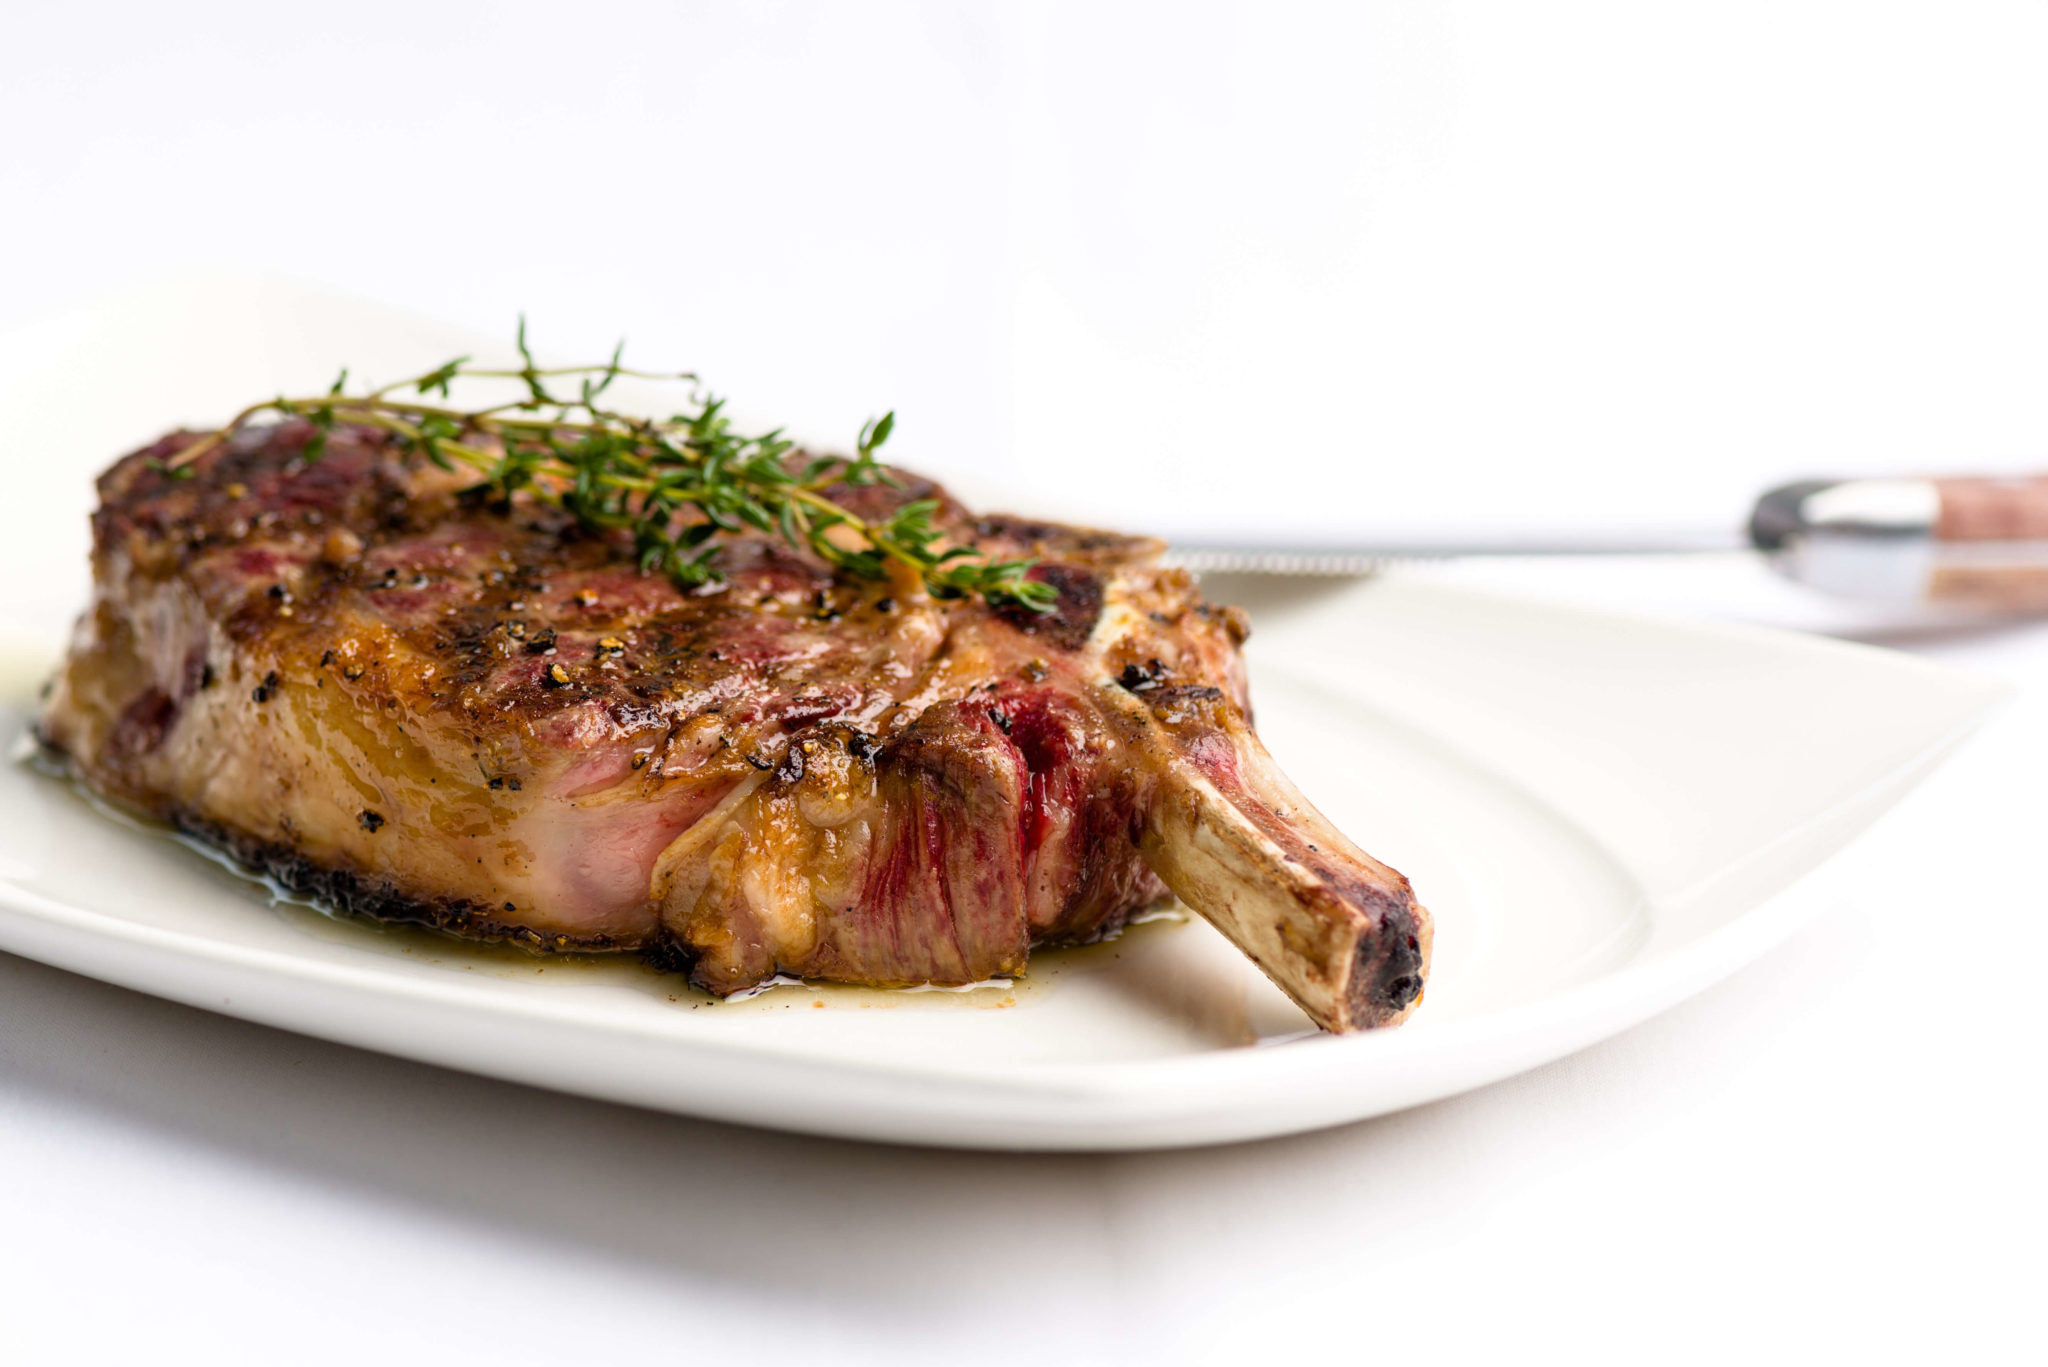 Image of 22-oz. Cowboy Rib-eye.